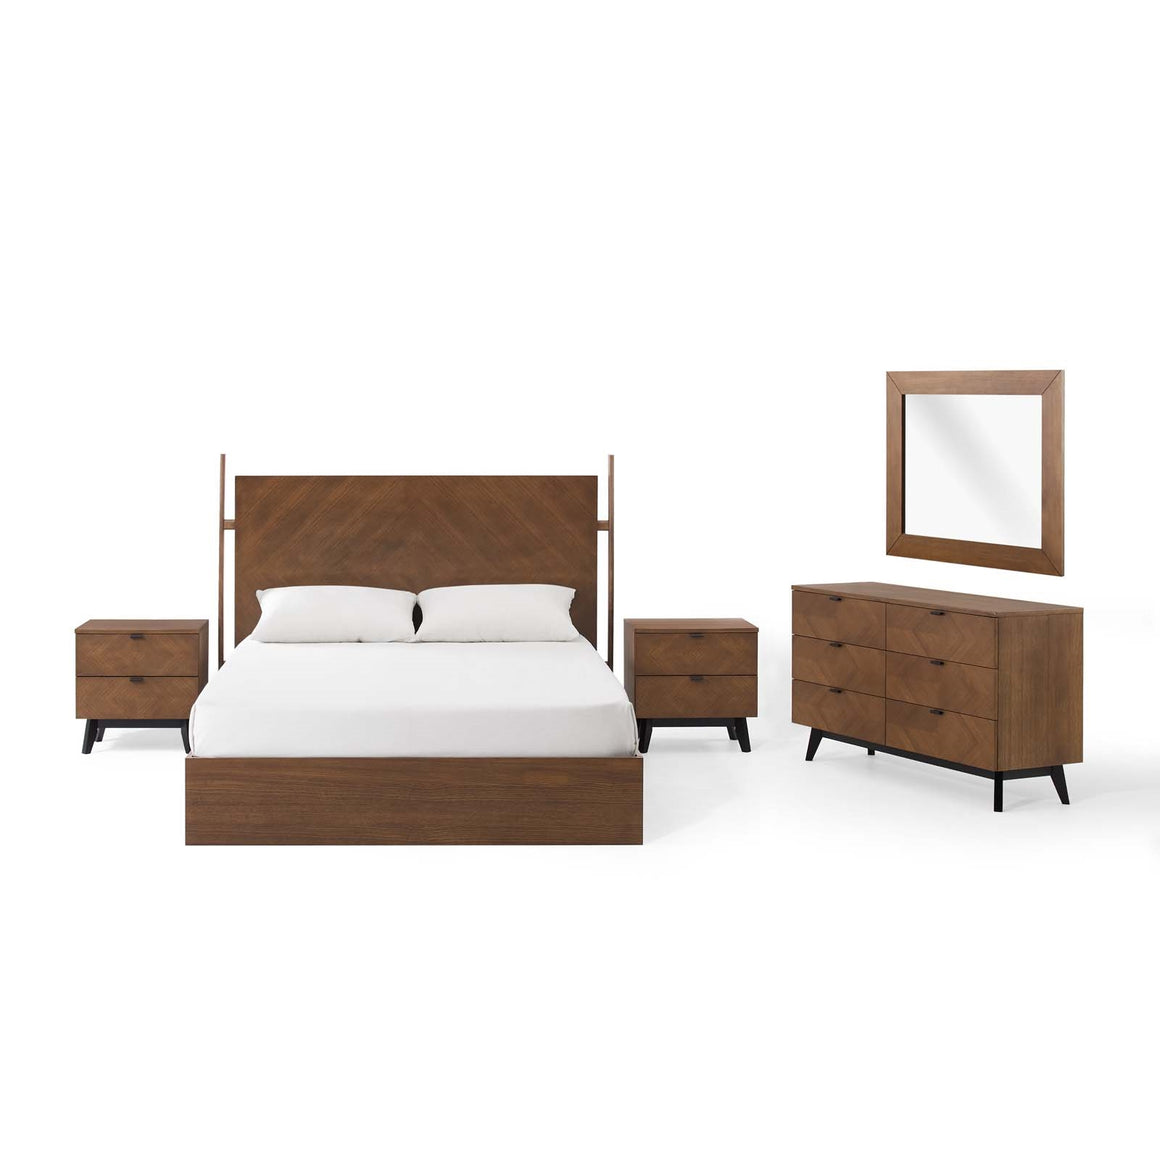 Kali 5 Piece Modern Queen Bedroom Set - taylor ray decor